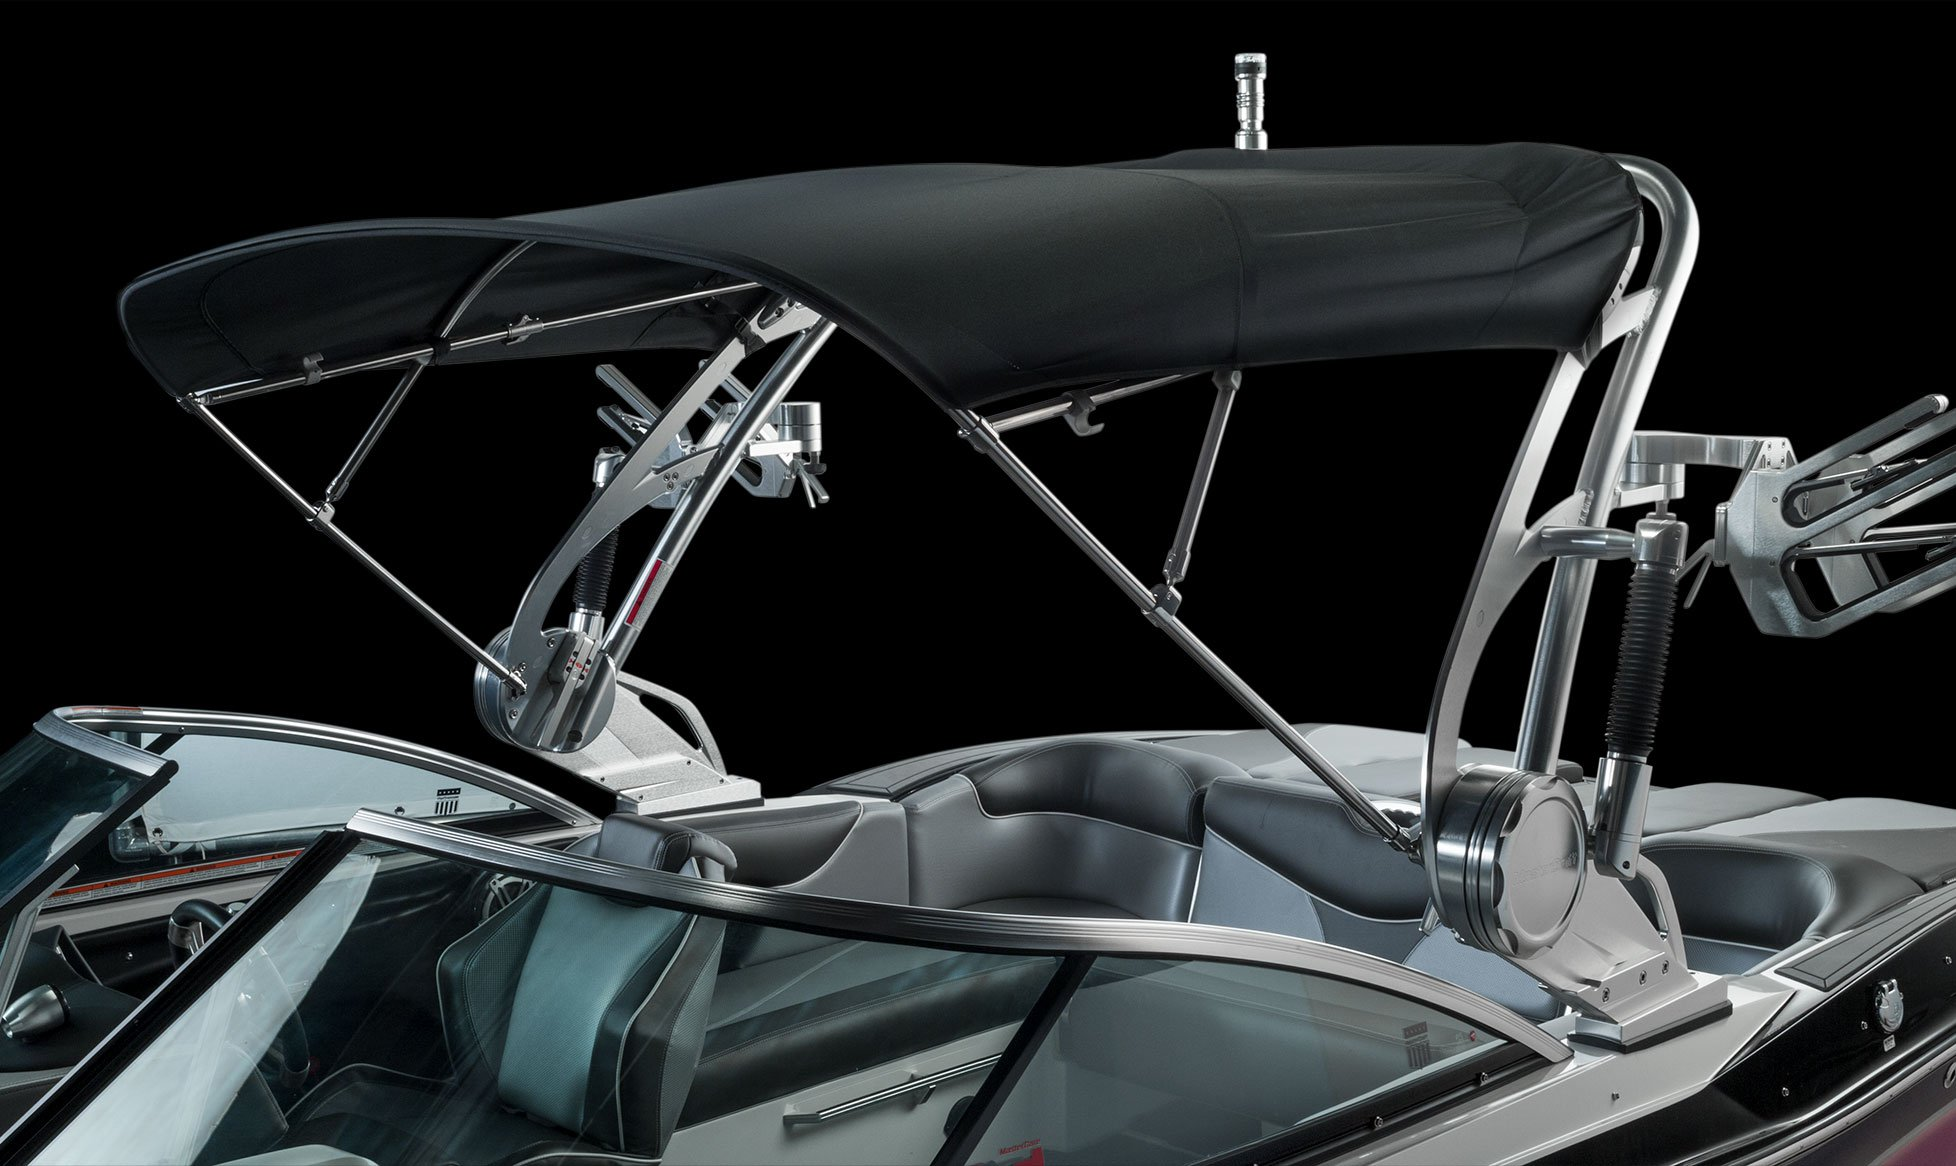 Mastercraft NXT 22 NICELY EQUIPPED - NXT22_06_Universal_bimini